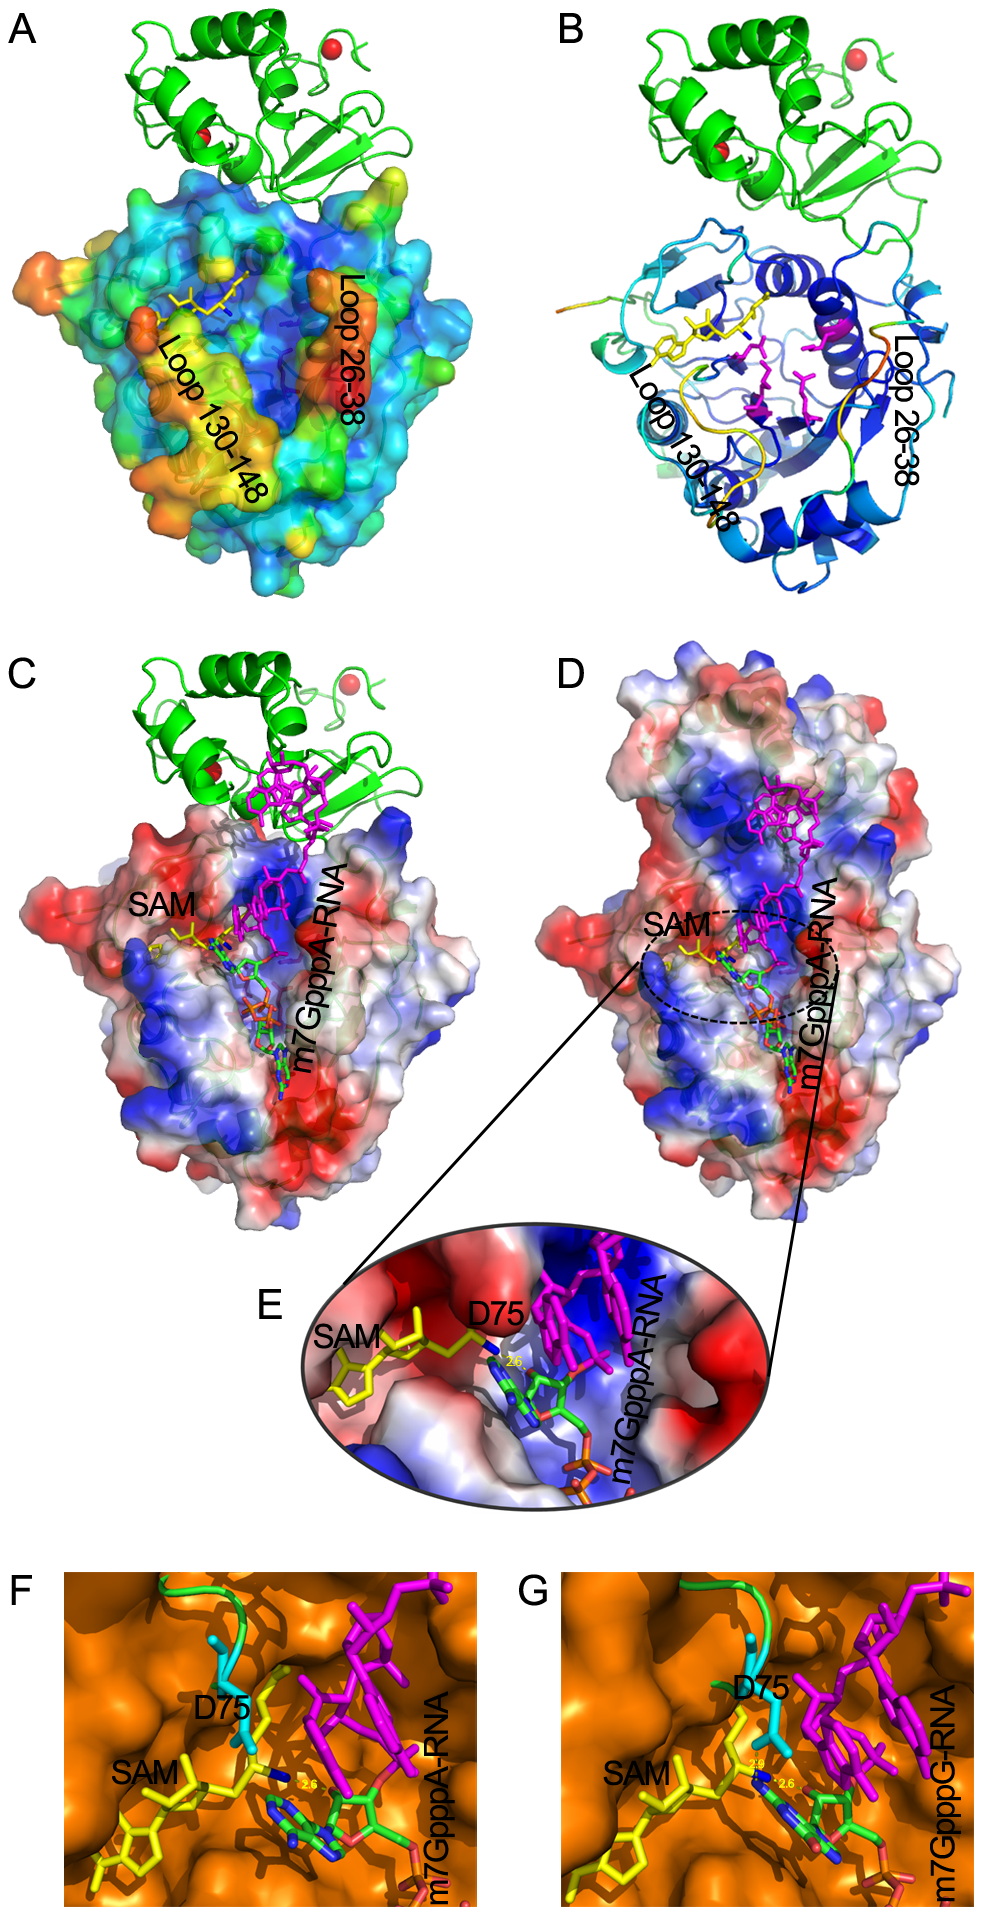 Structural mechanisms of nsp10 in stimulating the binding of capped RNA to nsp16.